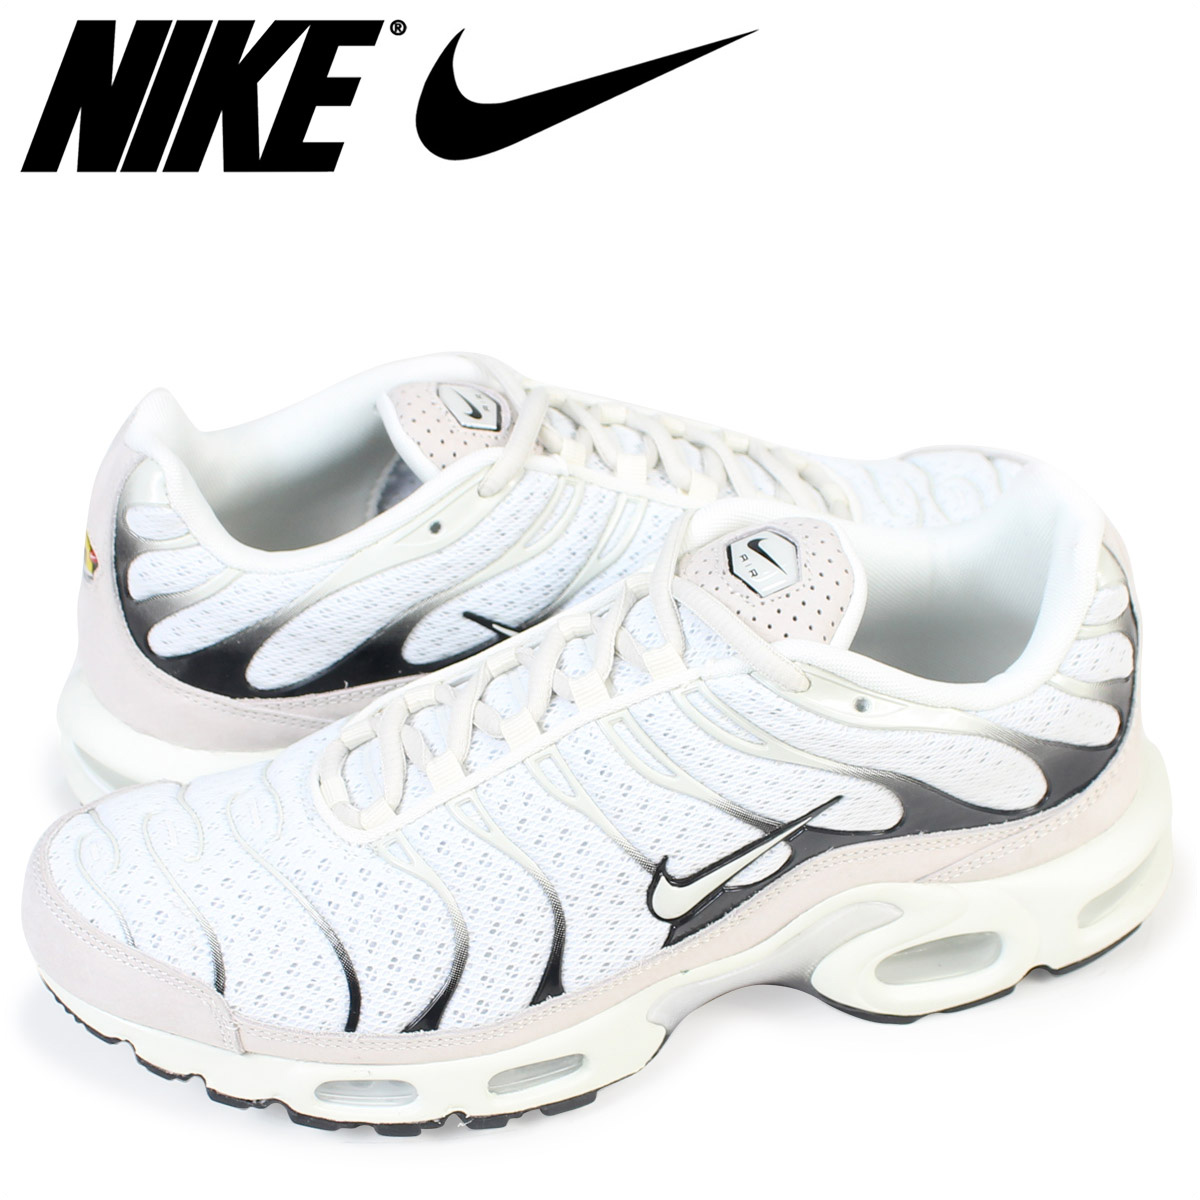 ALLSPORTS Rakuten Global Market NIKE LAB Nike laboratory Air Max sneakers AIR MAX PLUS 898018100 mens shoes white 96 Shinnyu load 179